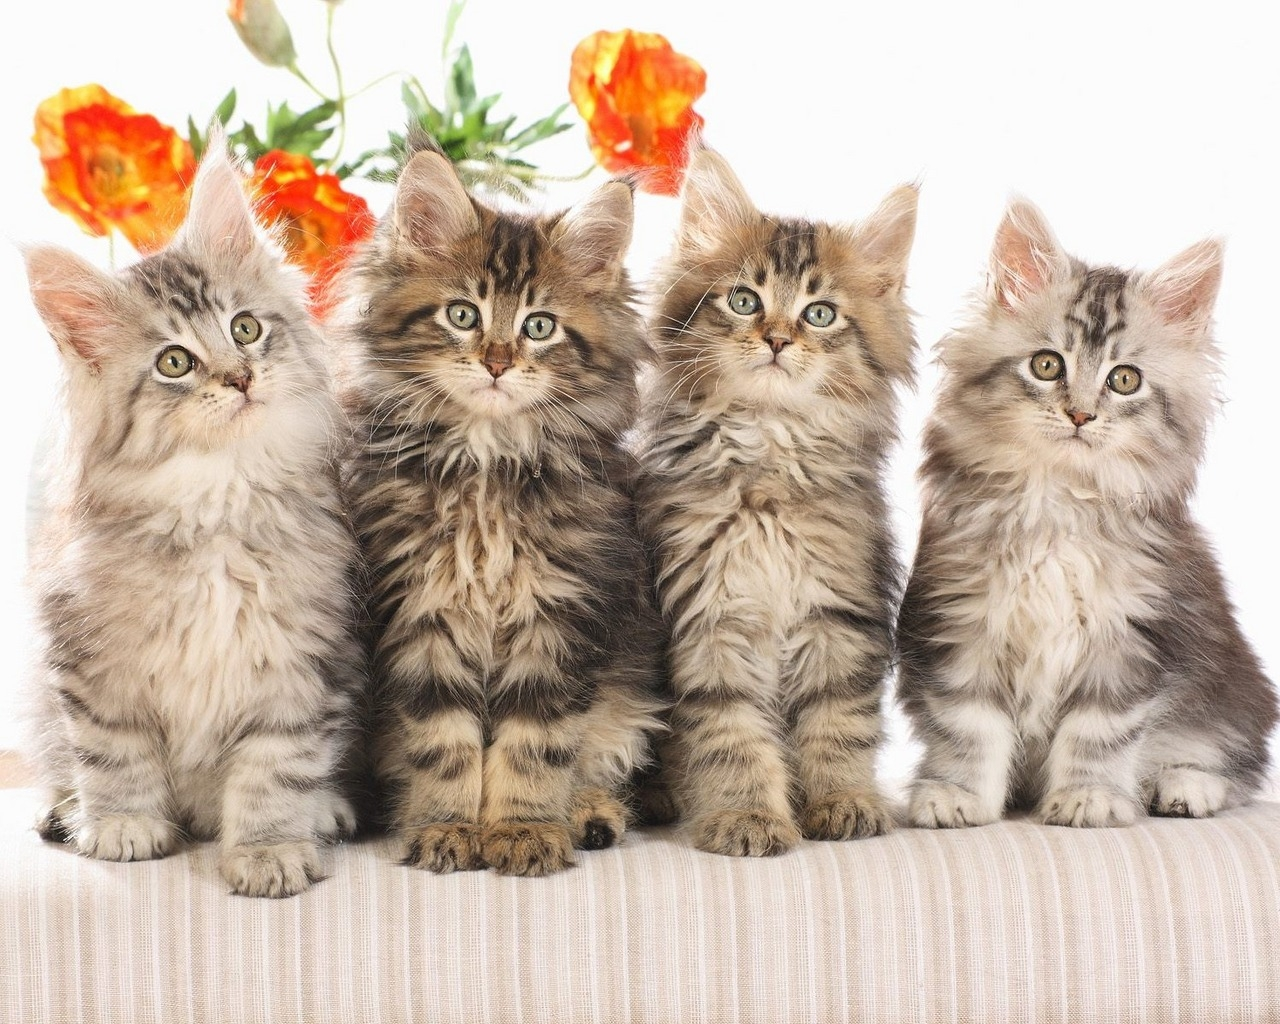 hd cat wallpaper cute cat wallpaper cat wallpaper baby cat wallpaper 1280x1024